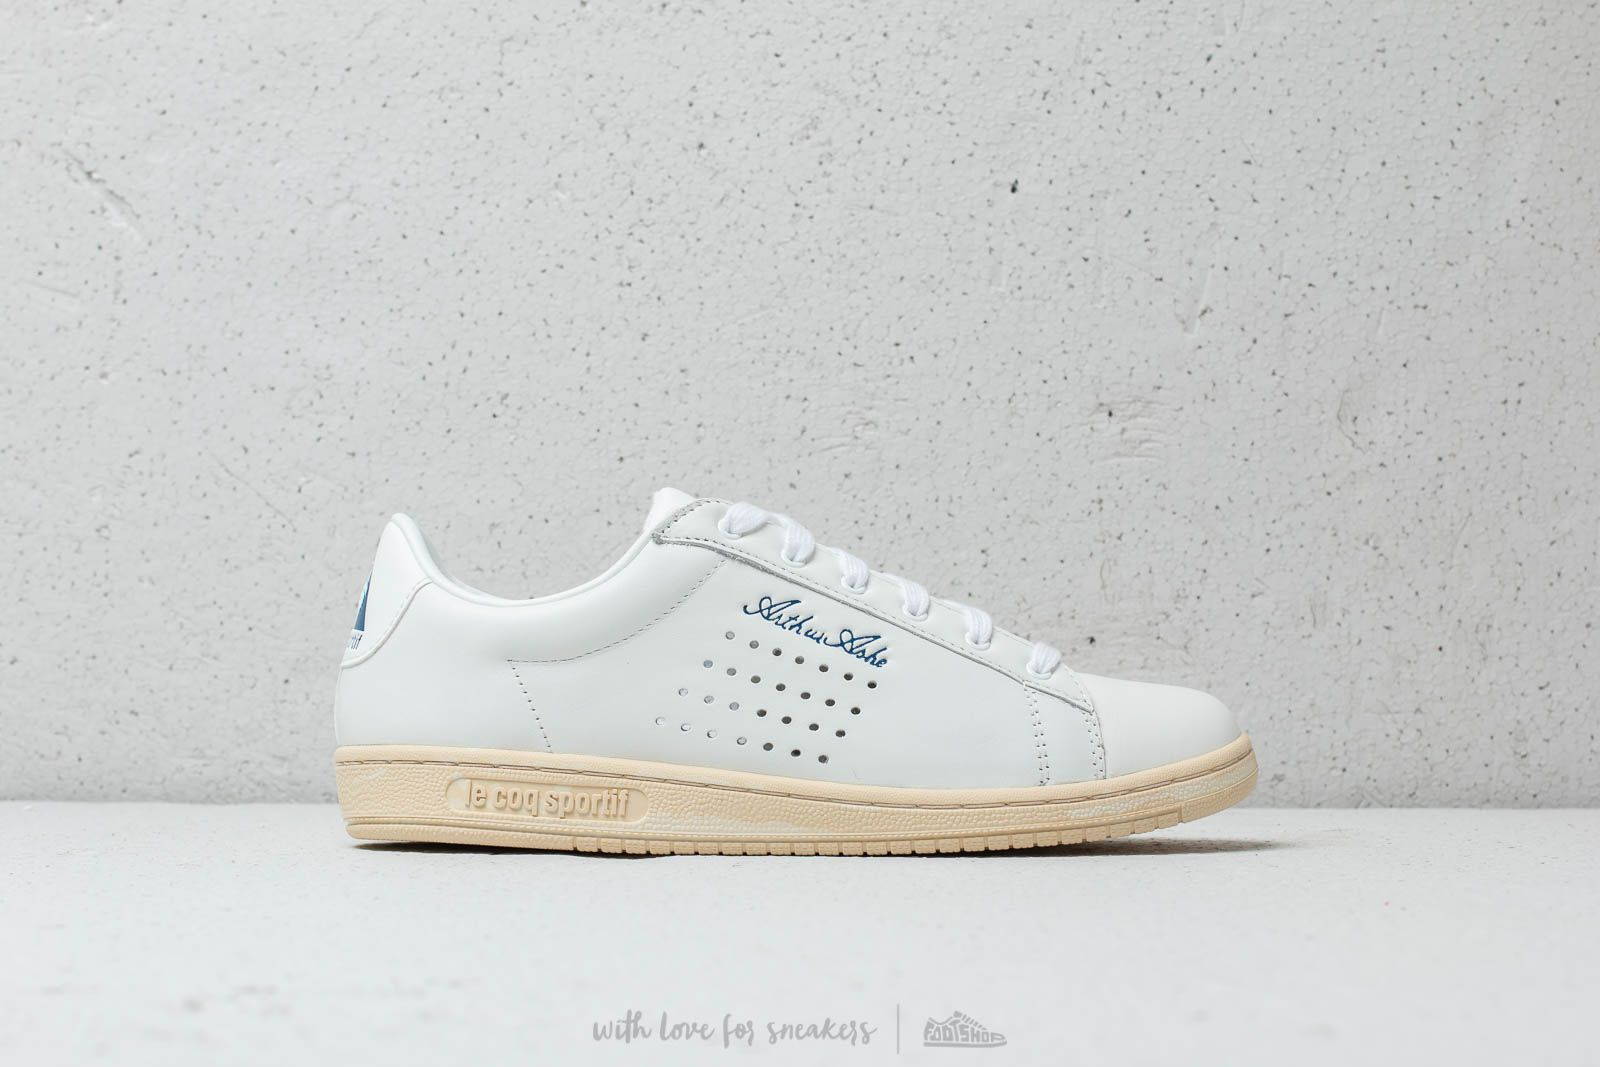 ae0a9dbbba9c Le Coq Sportif Arthur Ashe OG Optical White at a great price 92 € buy at